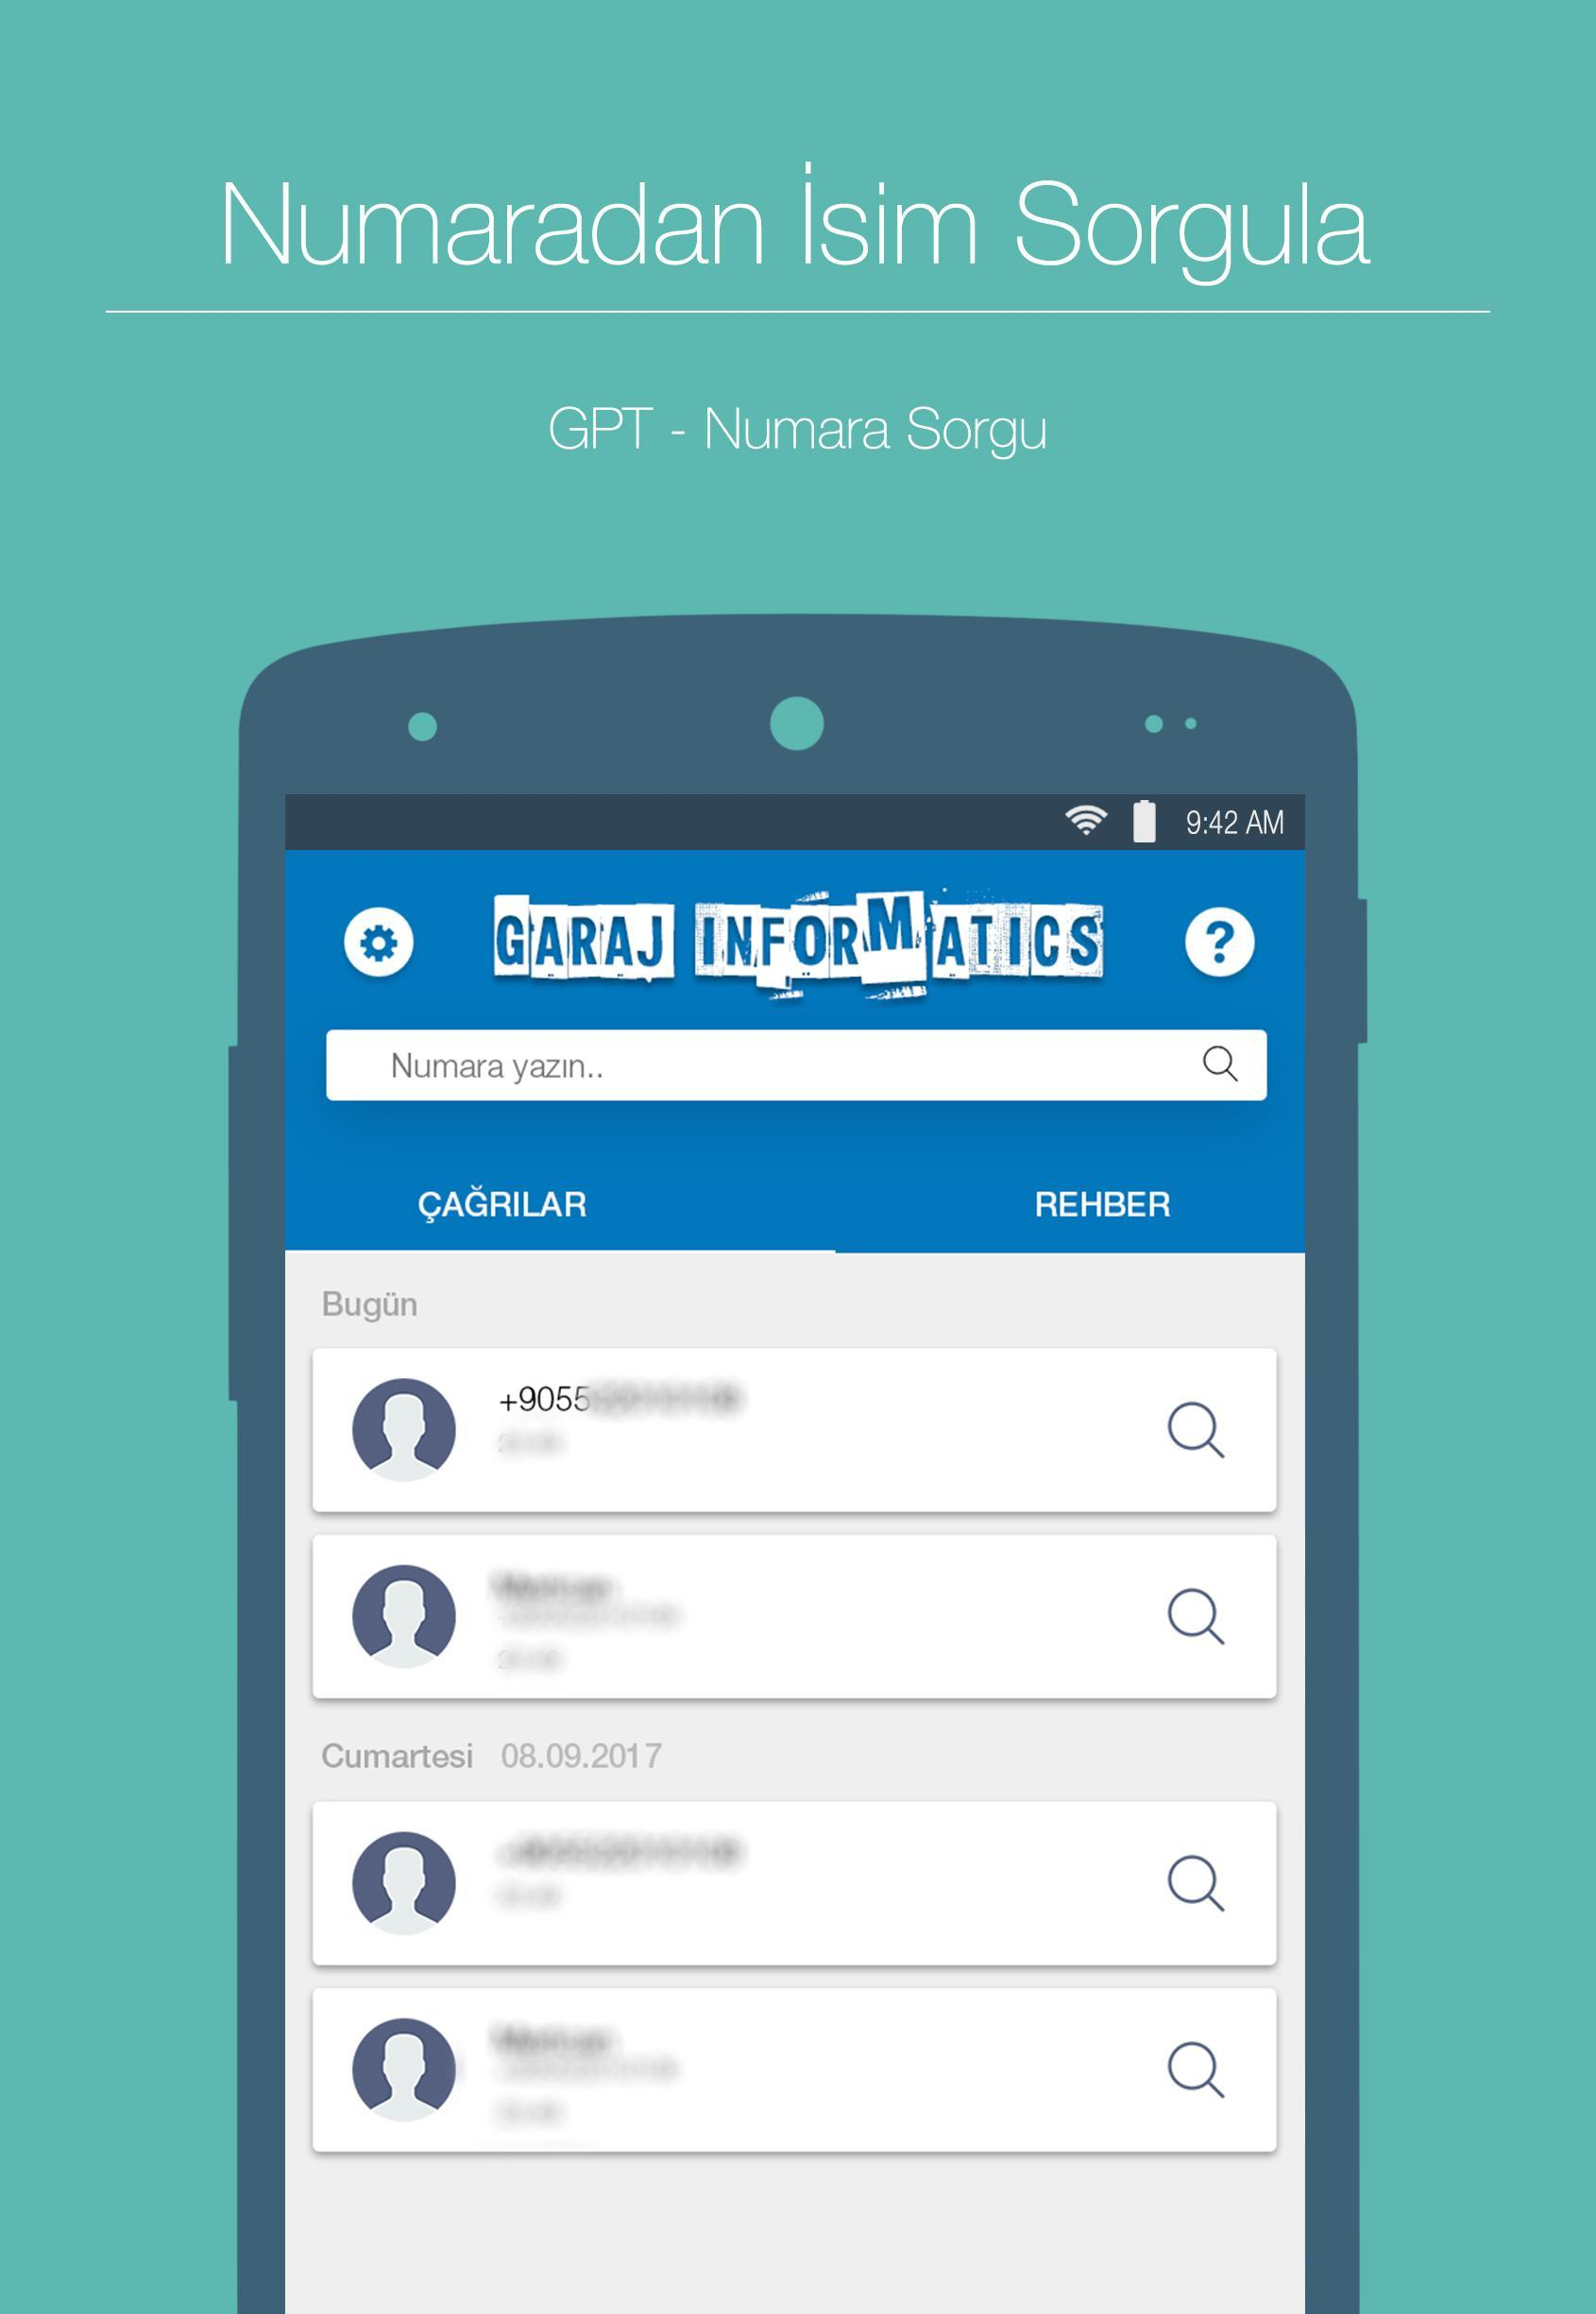 GPT - Numara Sorgulama for Android - APK Download